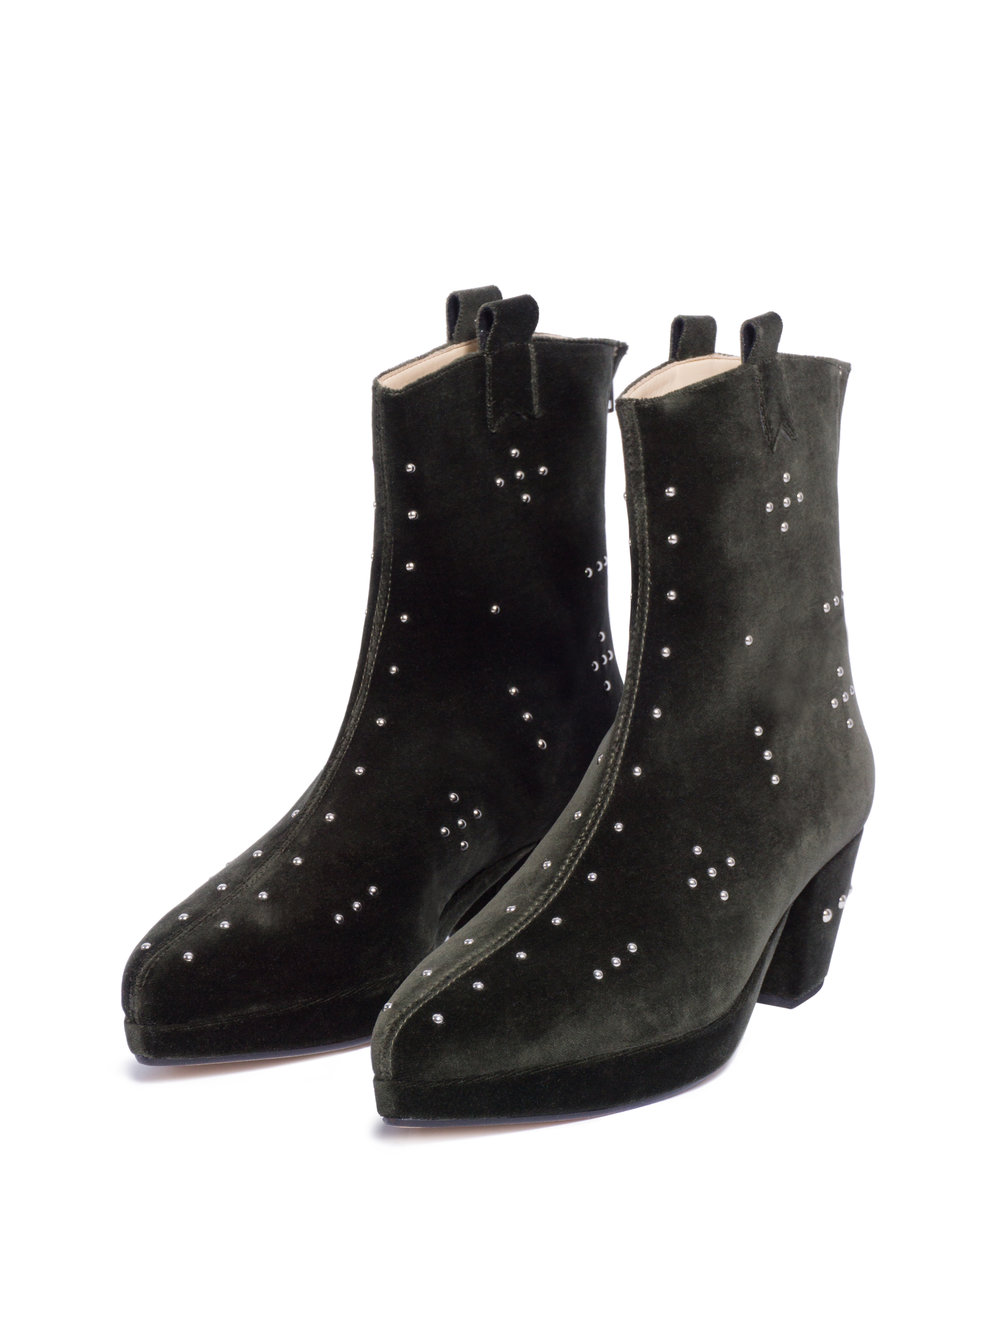 RANI BAGERIA X ENSOIE CROSS HIGH ANKLE BOOTS VERDE    € 415.00